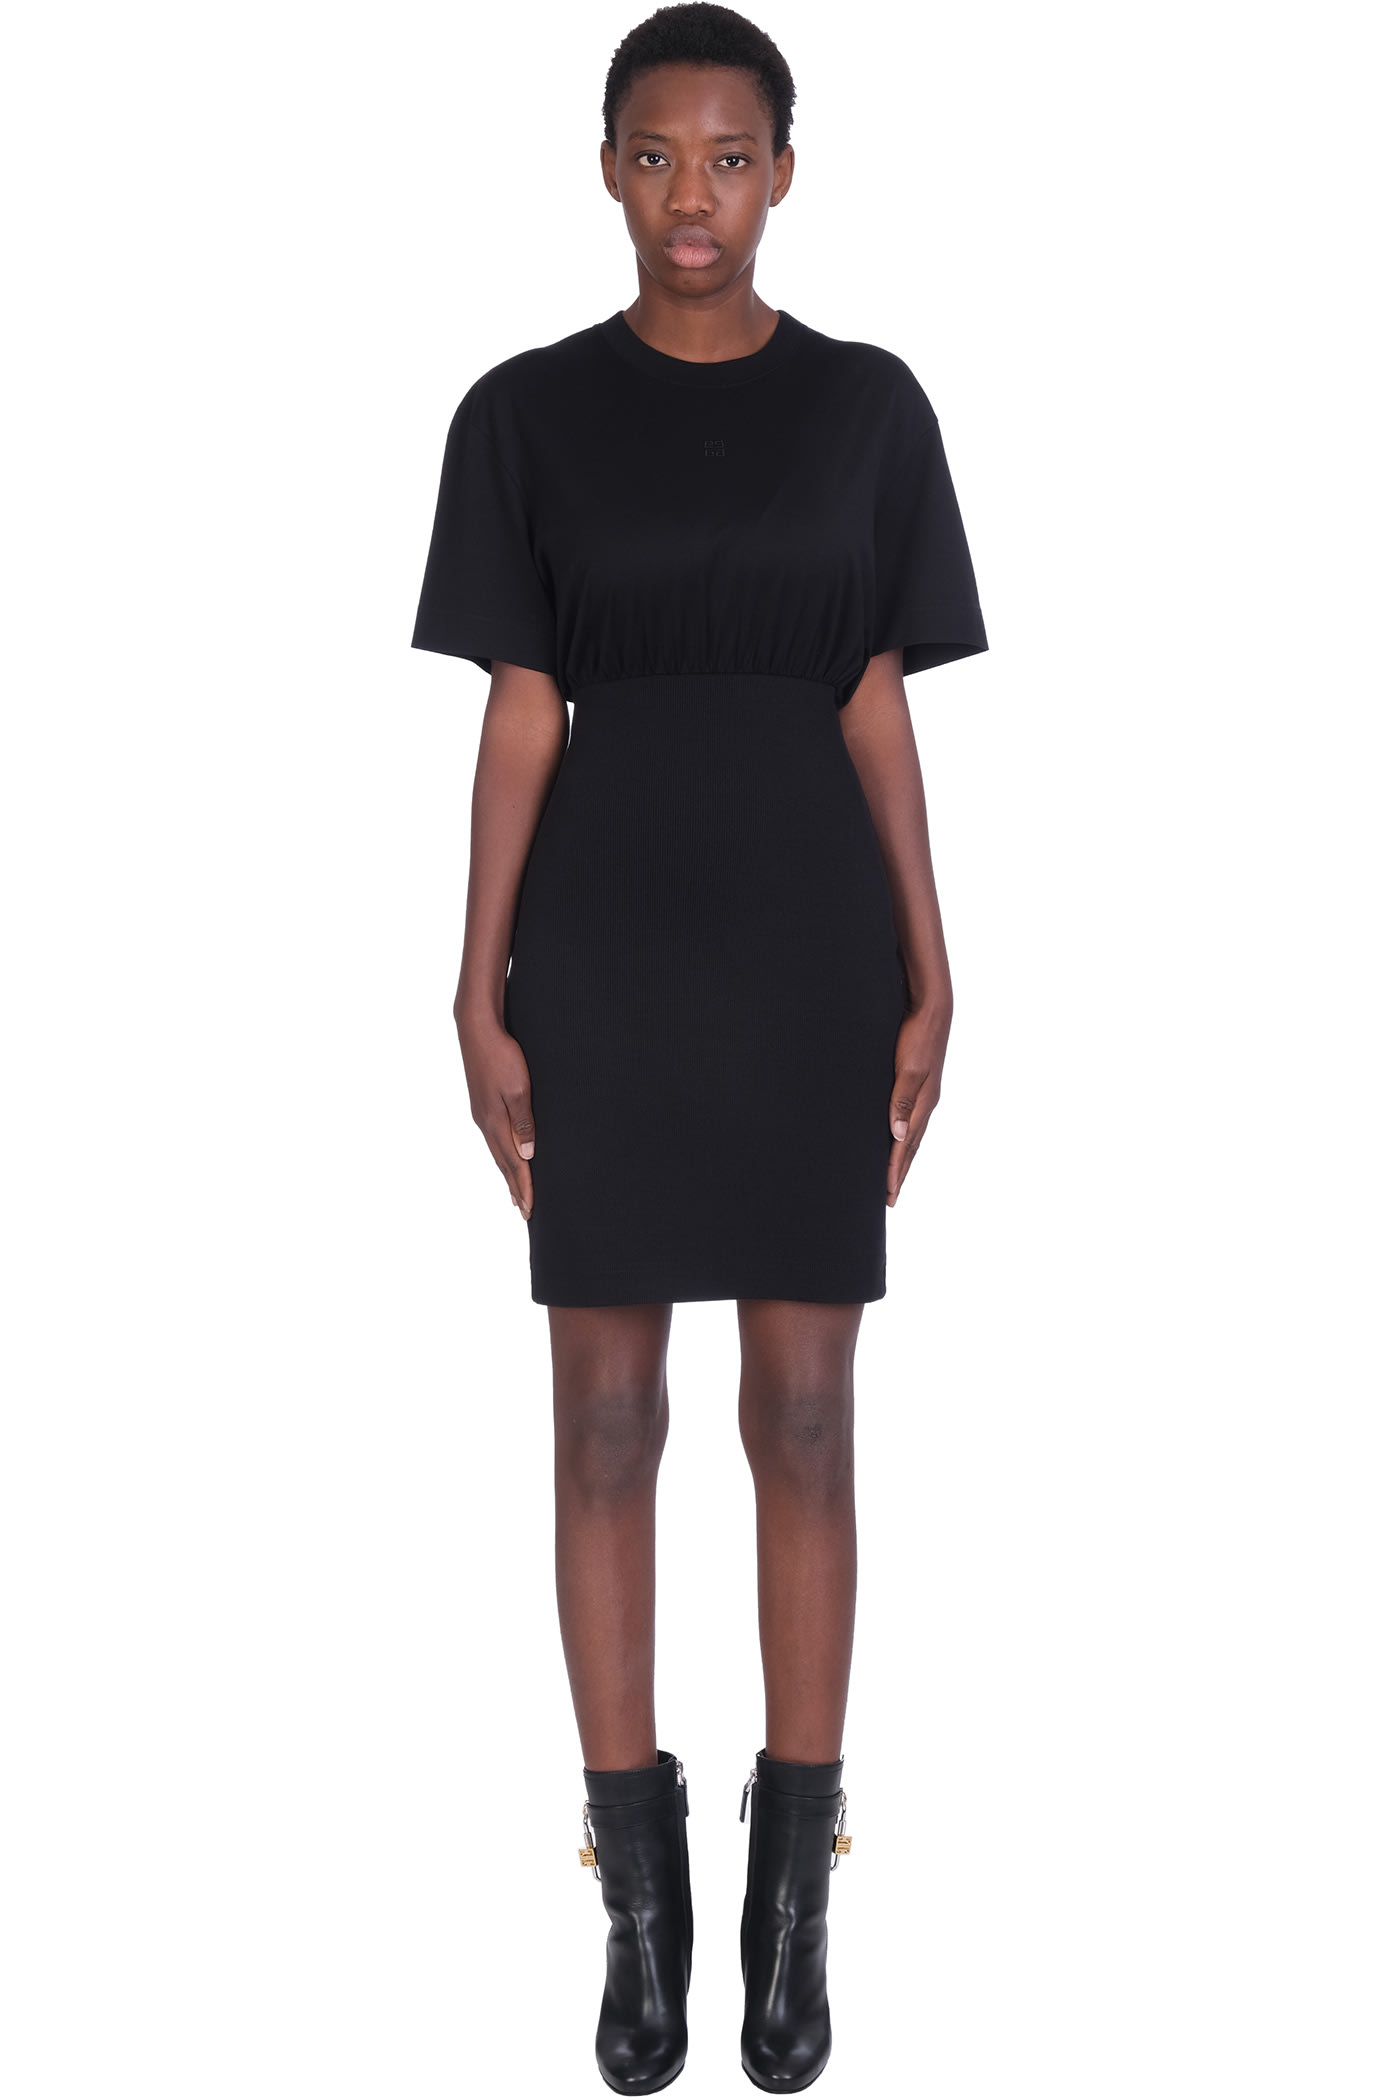 Buy Givenchy Dress In Black Cotton online, shop Givenchy with free shipping